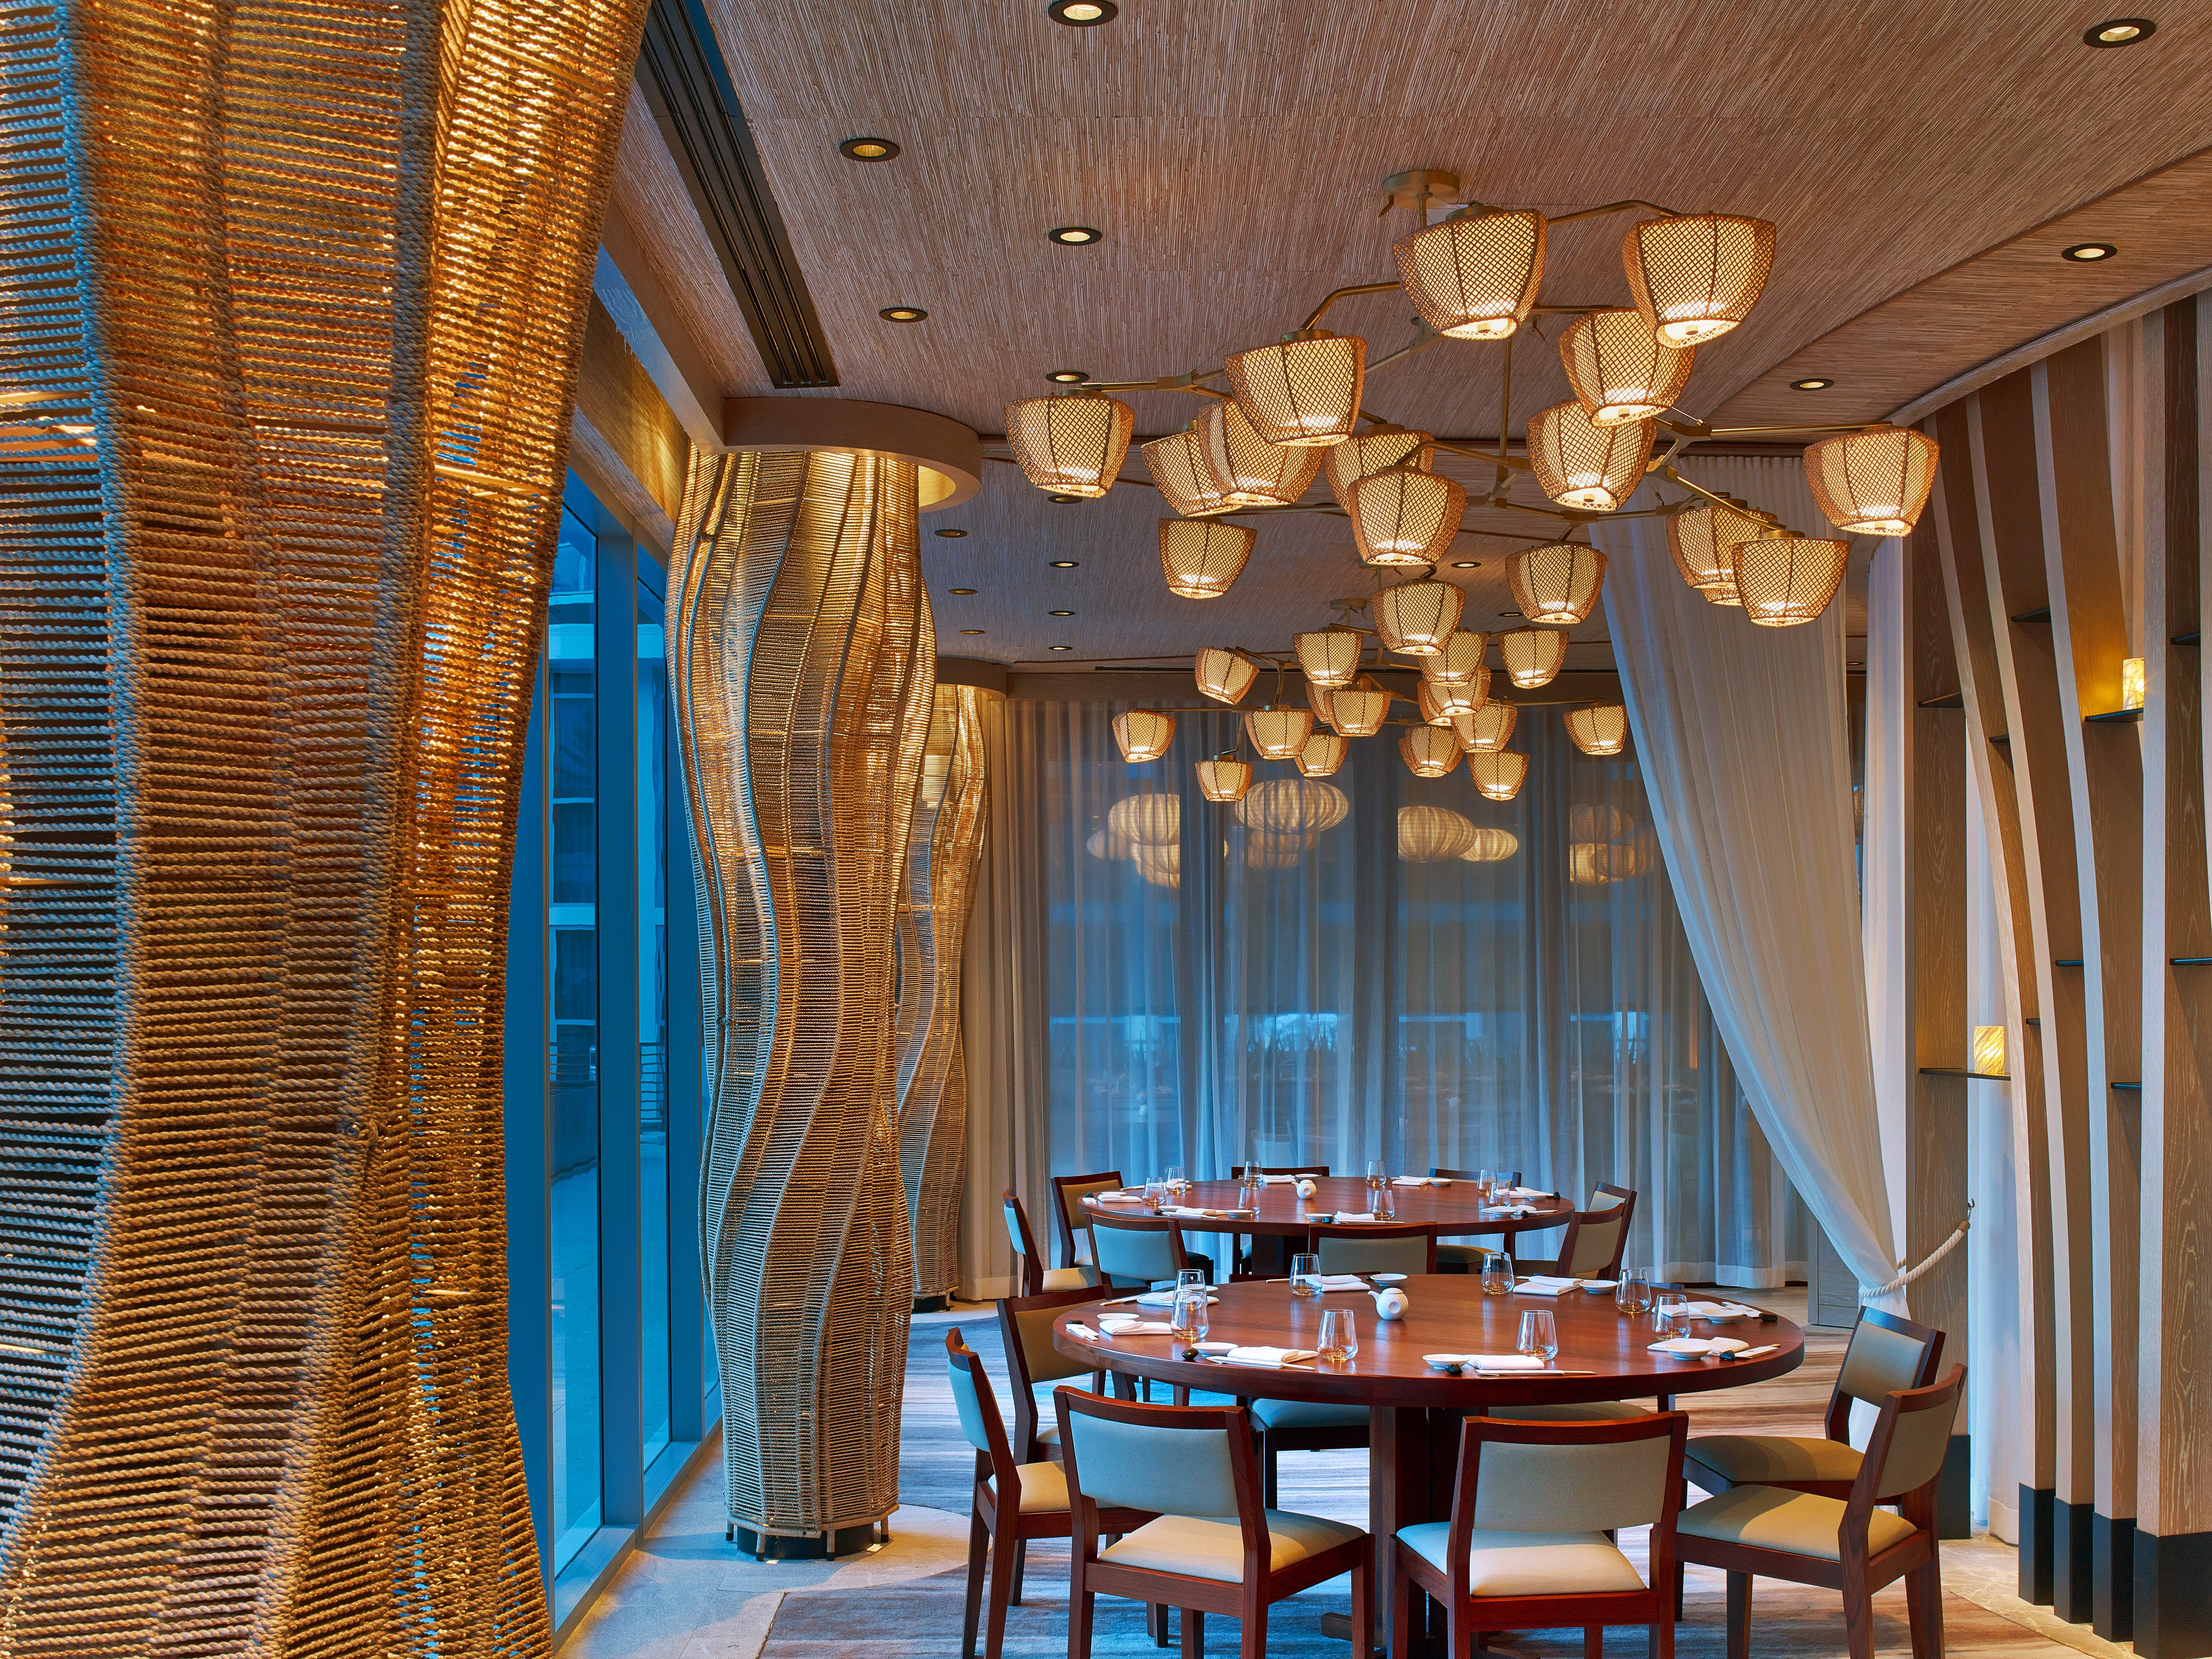 And As Well Being The Setting For Highly Acclaimed Nobu Restaurant Bar Hotel Now Houses Farm To Table Malibu